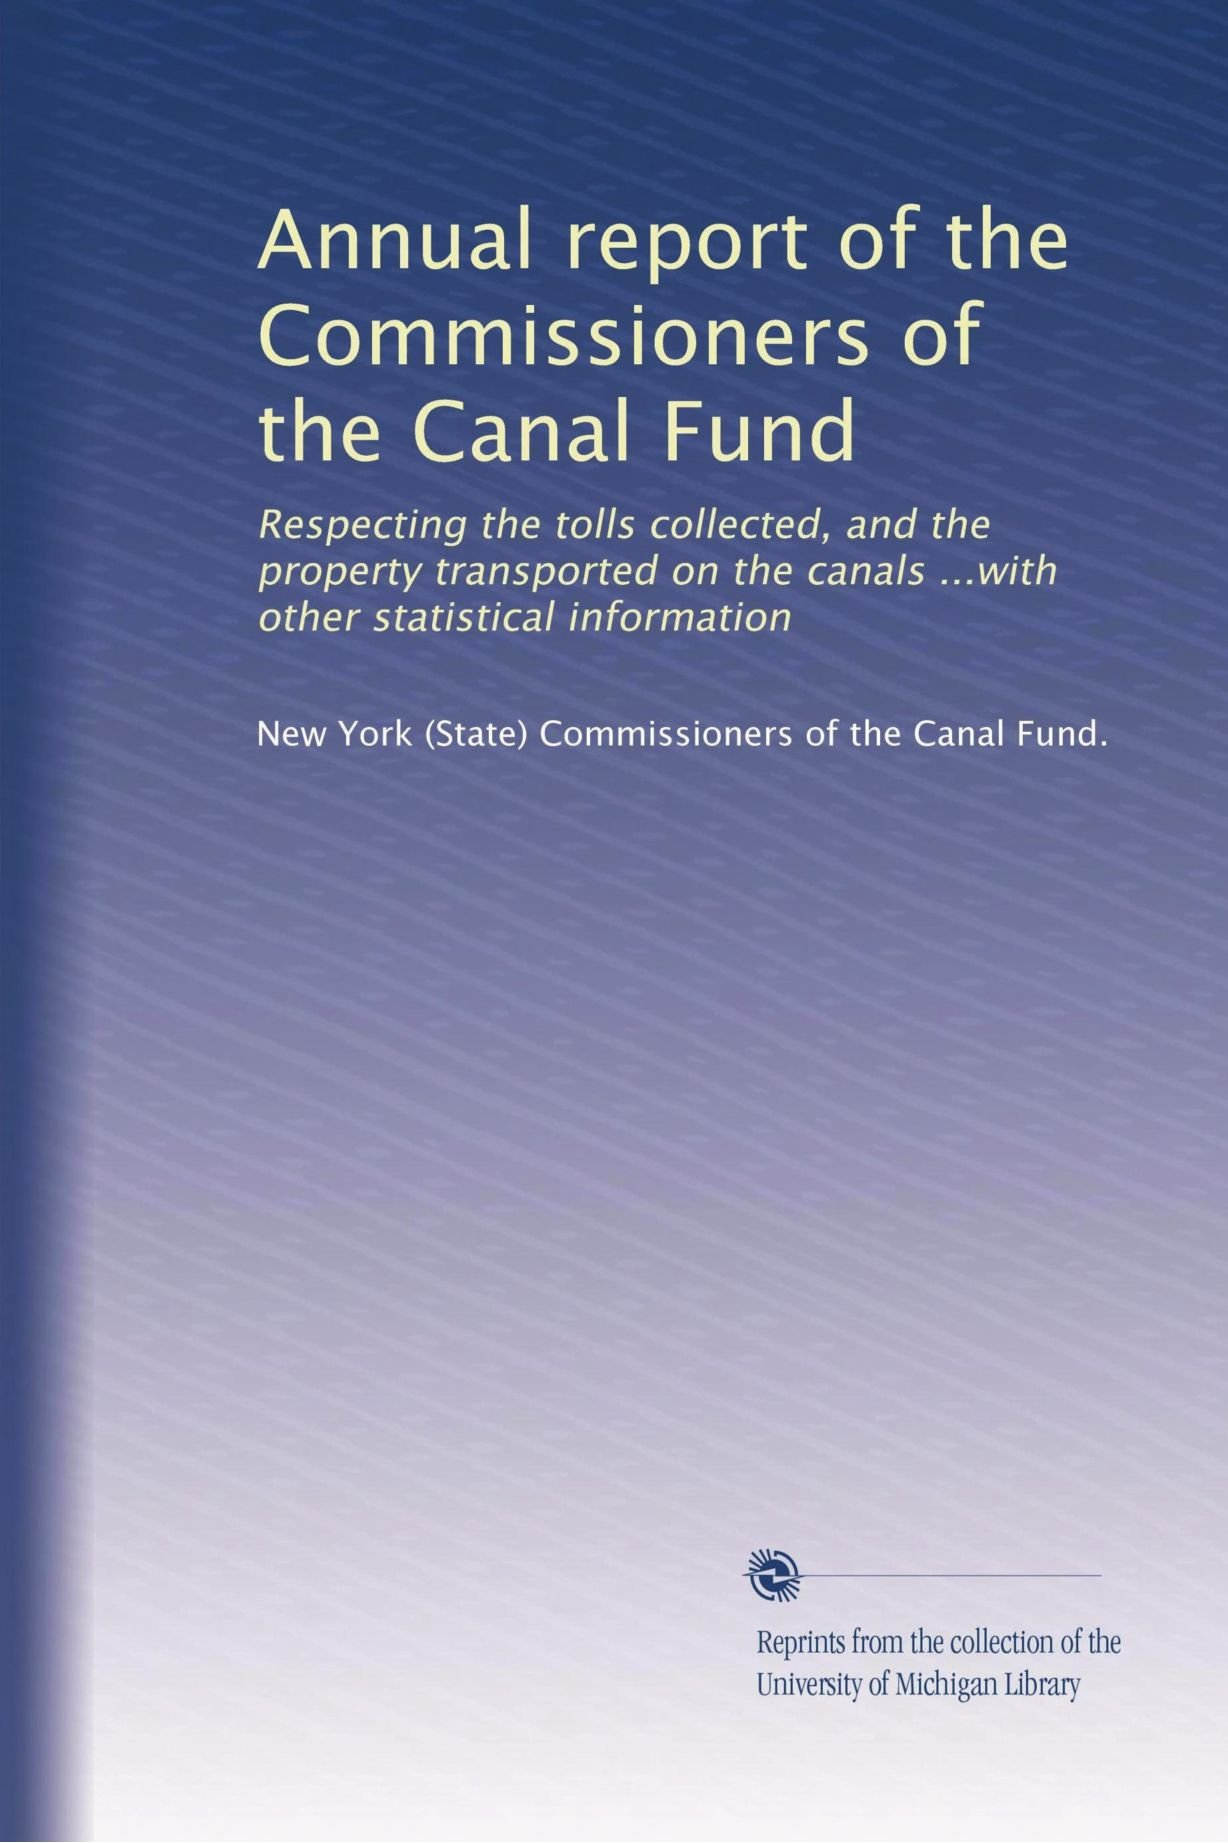 Annual report of the Commissioners of the Canal Fund: Respecting the tolls collected, and the property transported on the canals ...with other statistical information (Volume 5) ebook